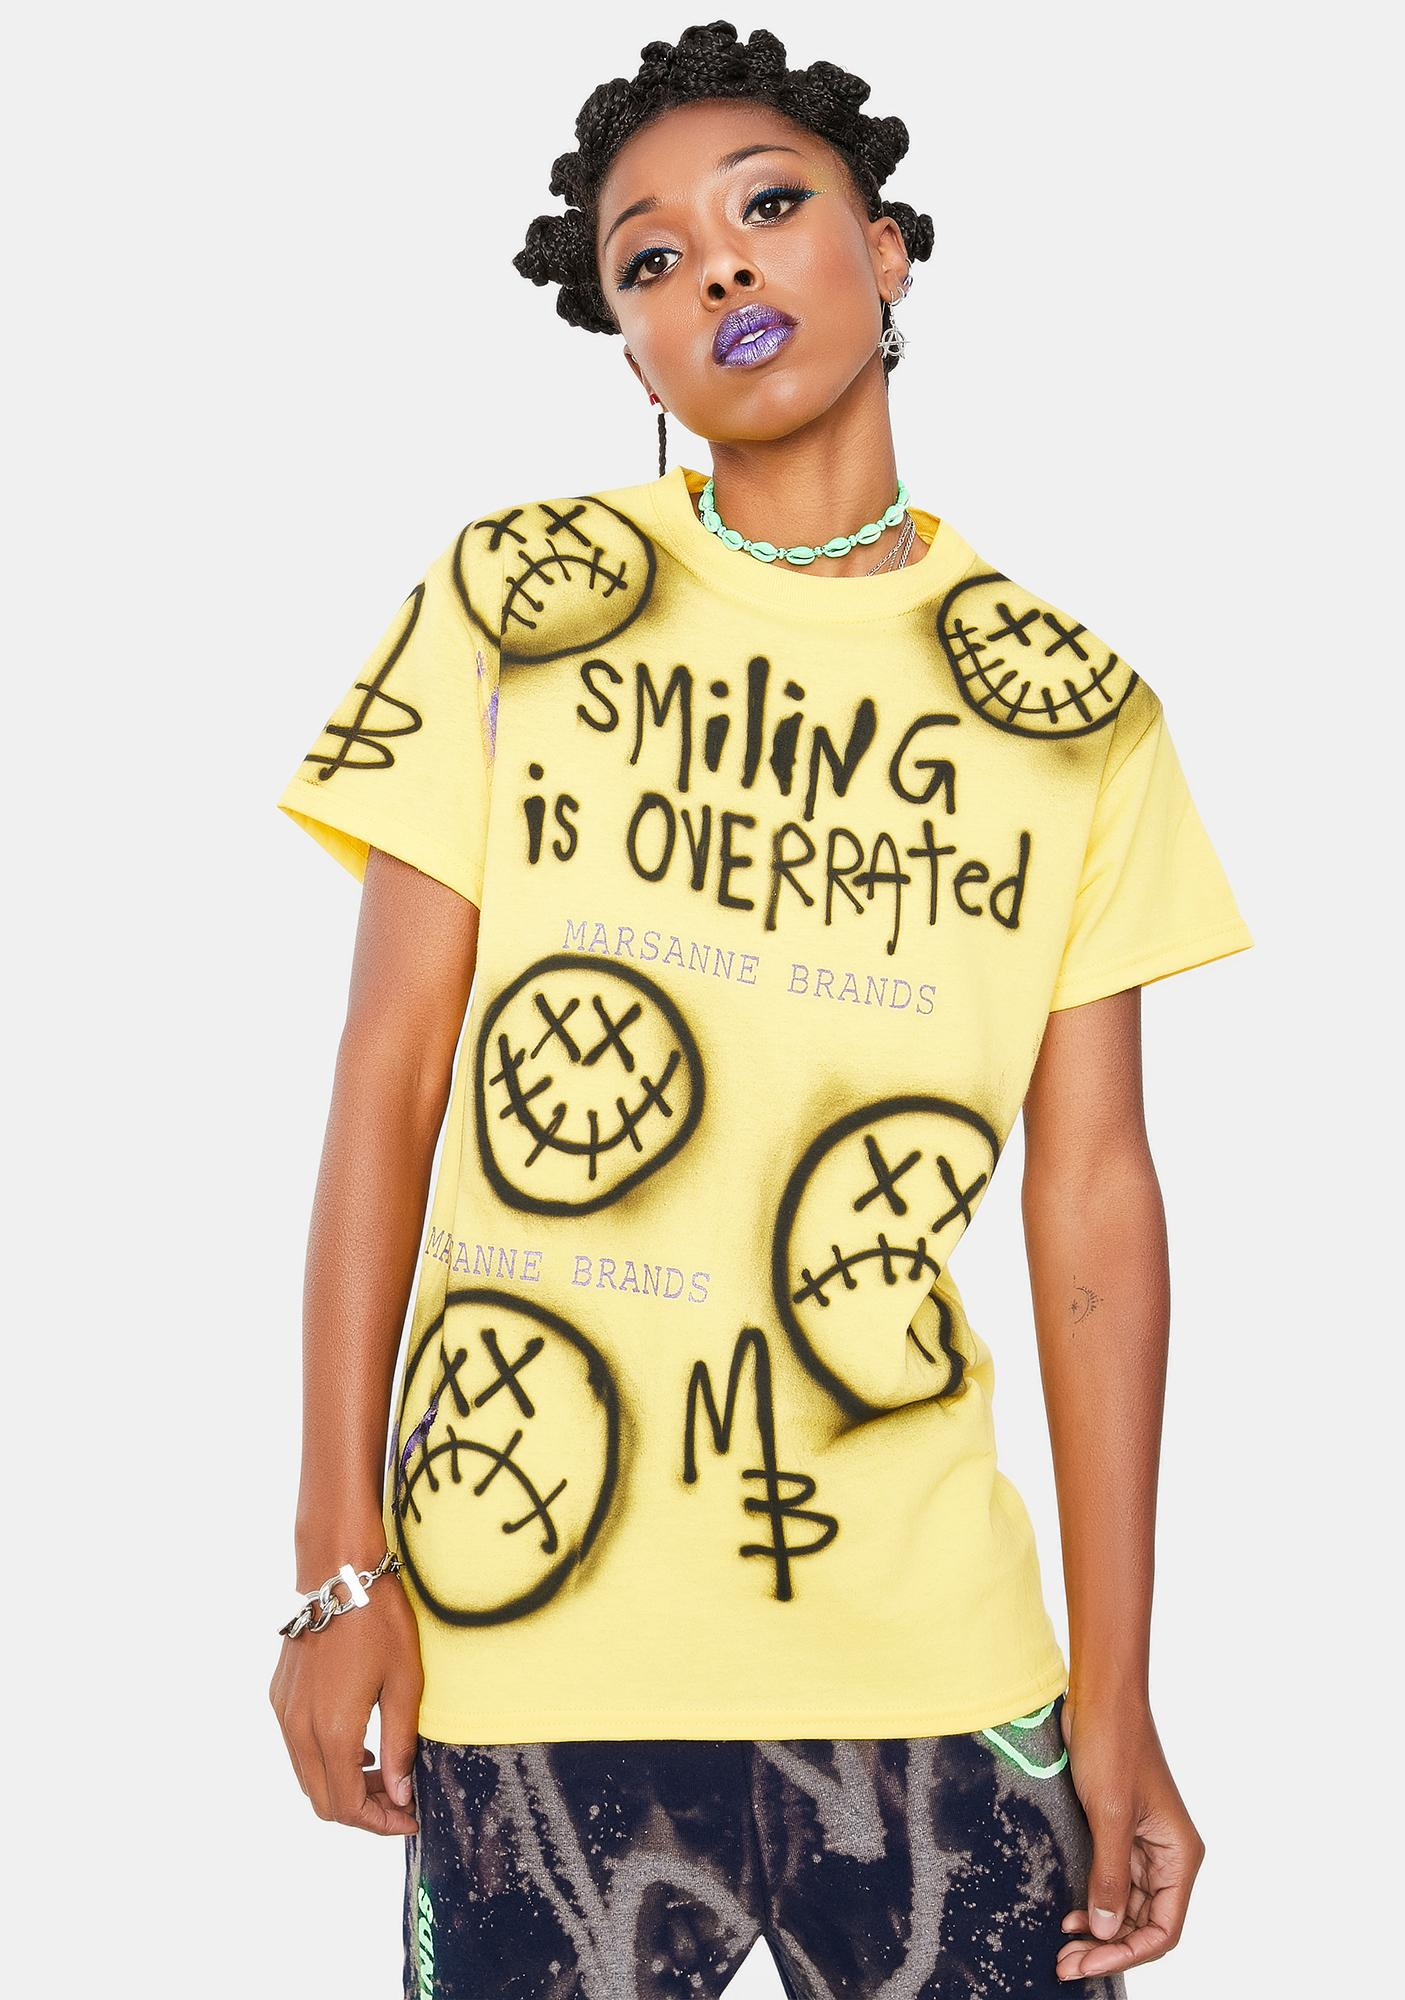 Marsanne Brands Smiling Is Overrated Graphic Tee